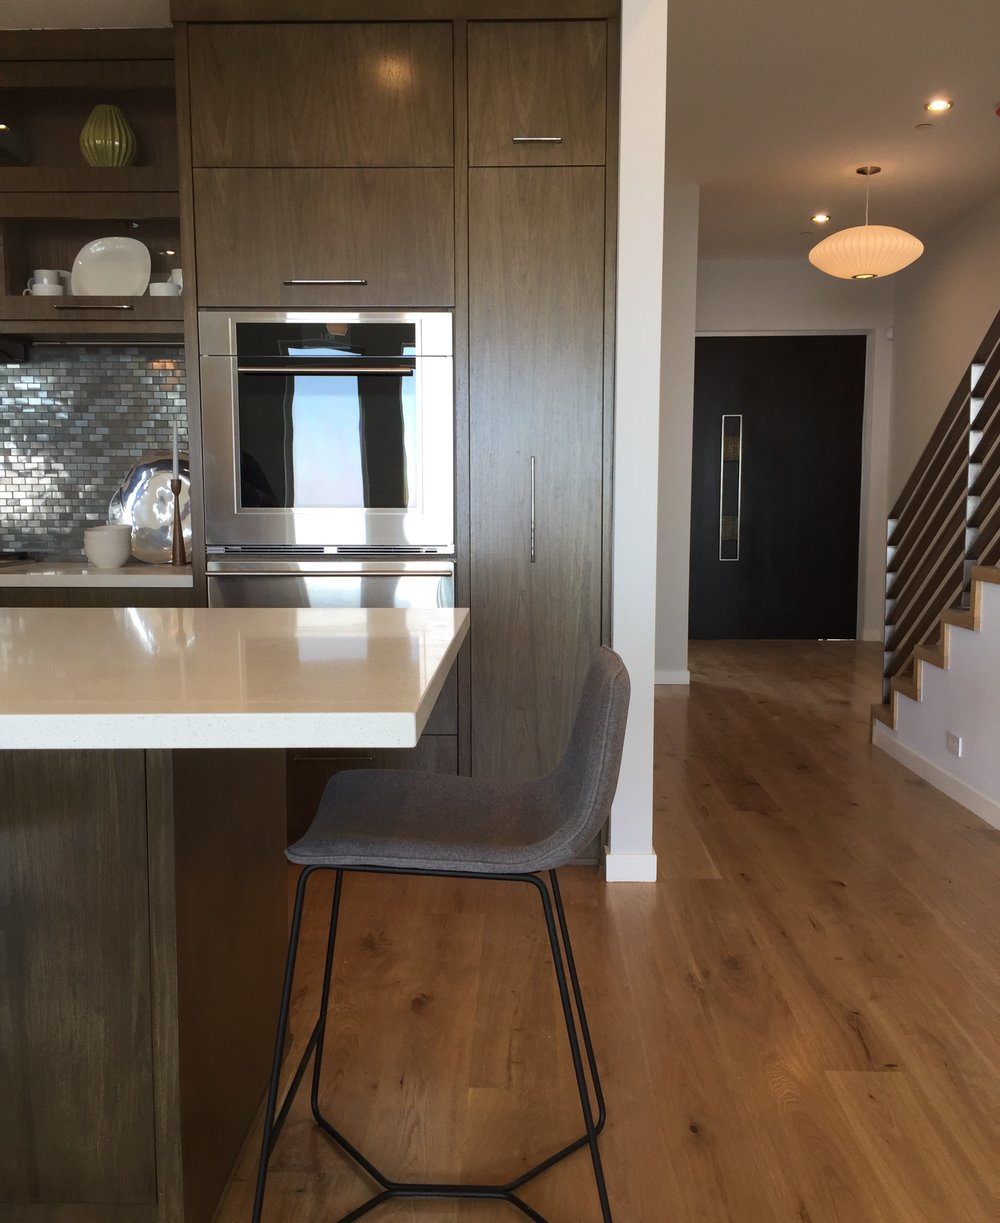 west elm, counter stool, quartz counter, walnut cabinetry, midcentury modern, oak floors, custom kitchen design, stainless steel, wolf appliances, design within reach, y-lighting,